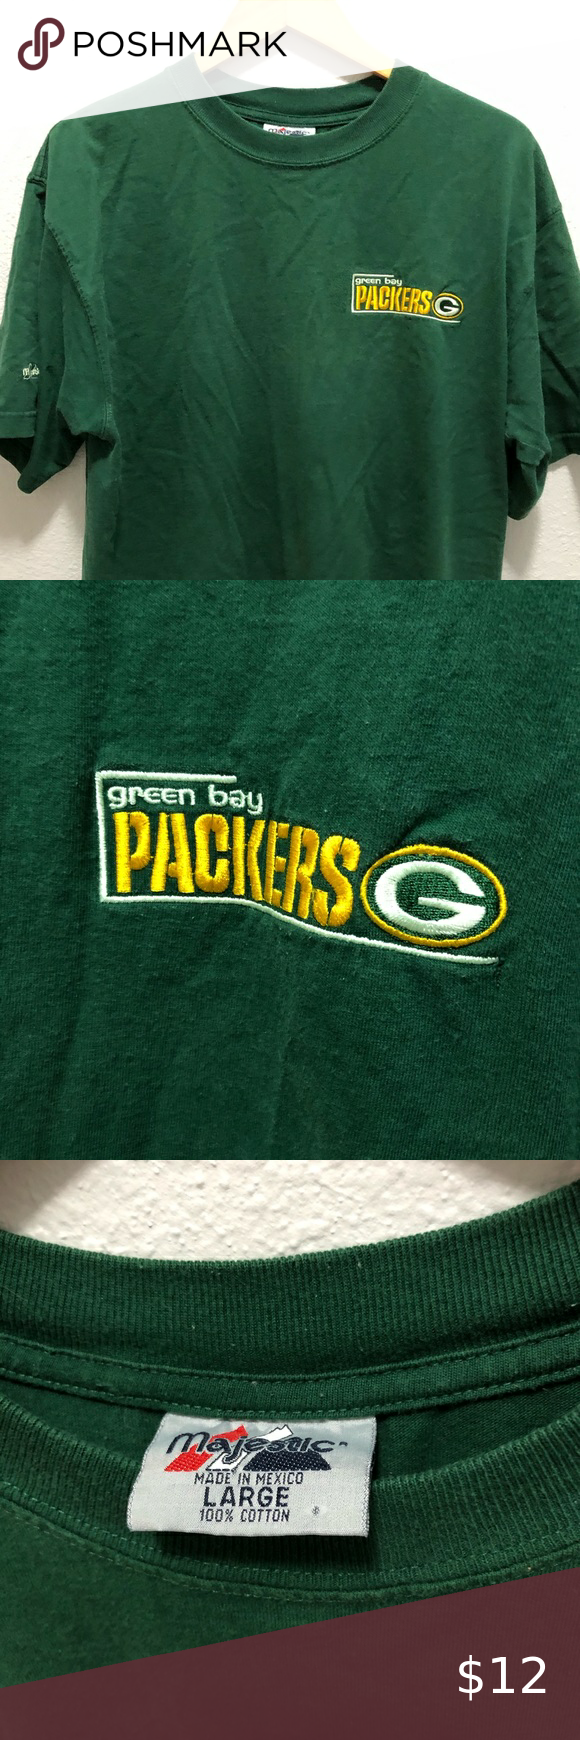 Vintage Green Bay Packers Tee Stitched Majestic Green Bag Packers Vintage Tee Left Chest Packers Logo Overall Quality 8 10 Over Green Bay Packers Vintage Green Green Bag